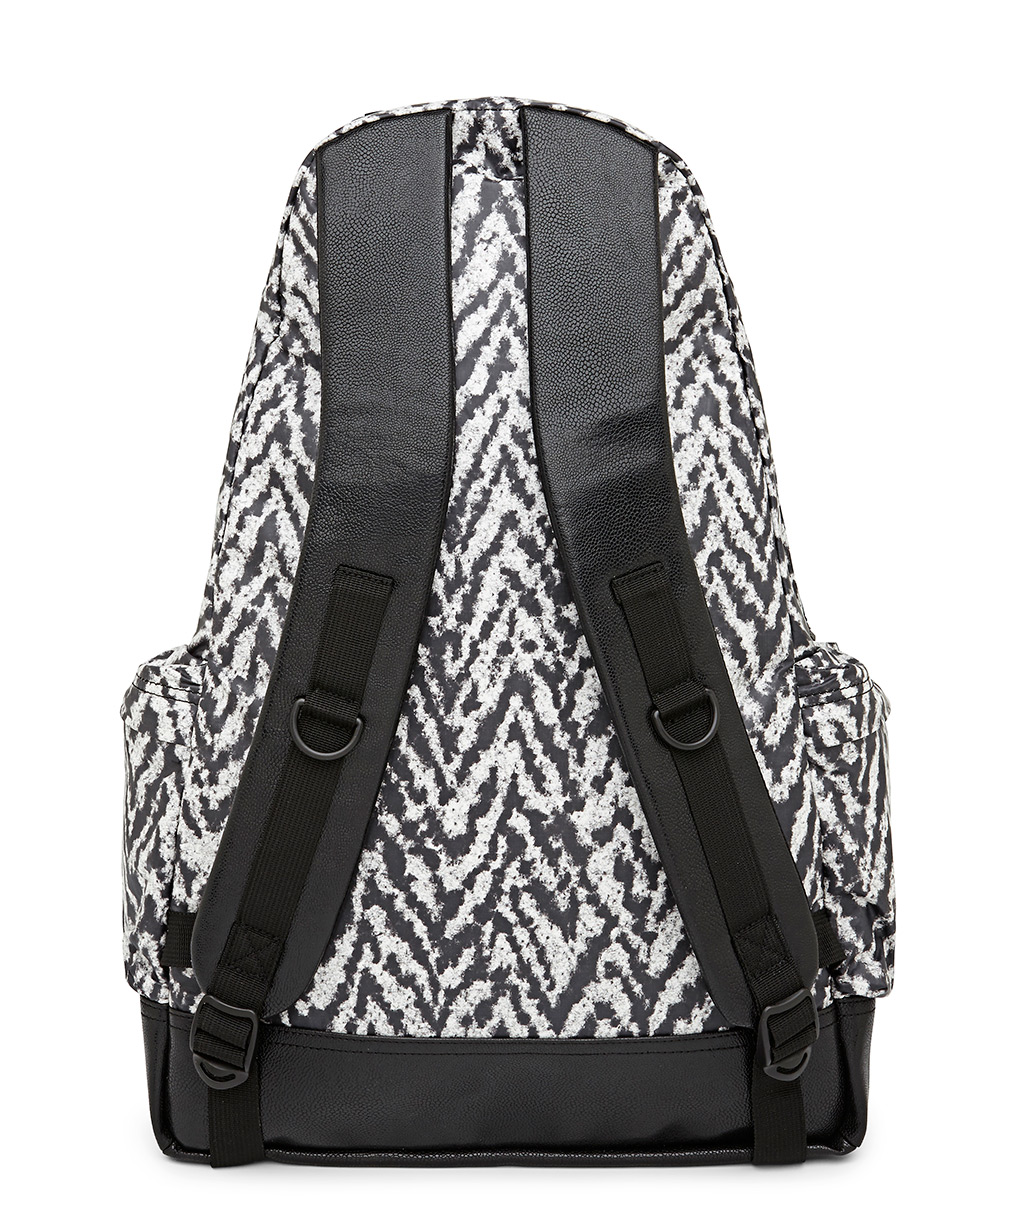 Sneakerboy® KRISVANASSCHE Fall Winter 2014 Backpack 4